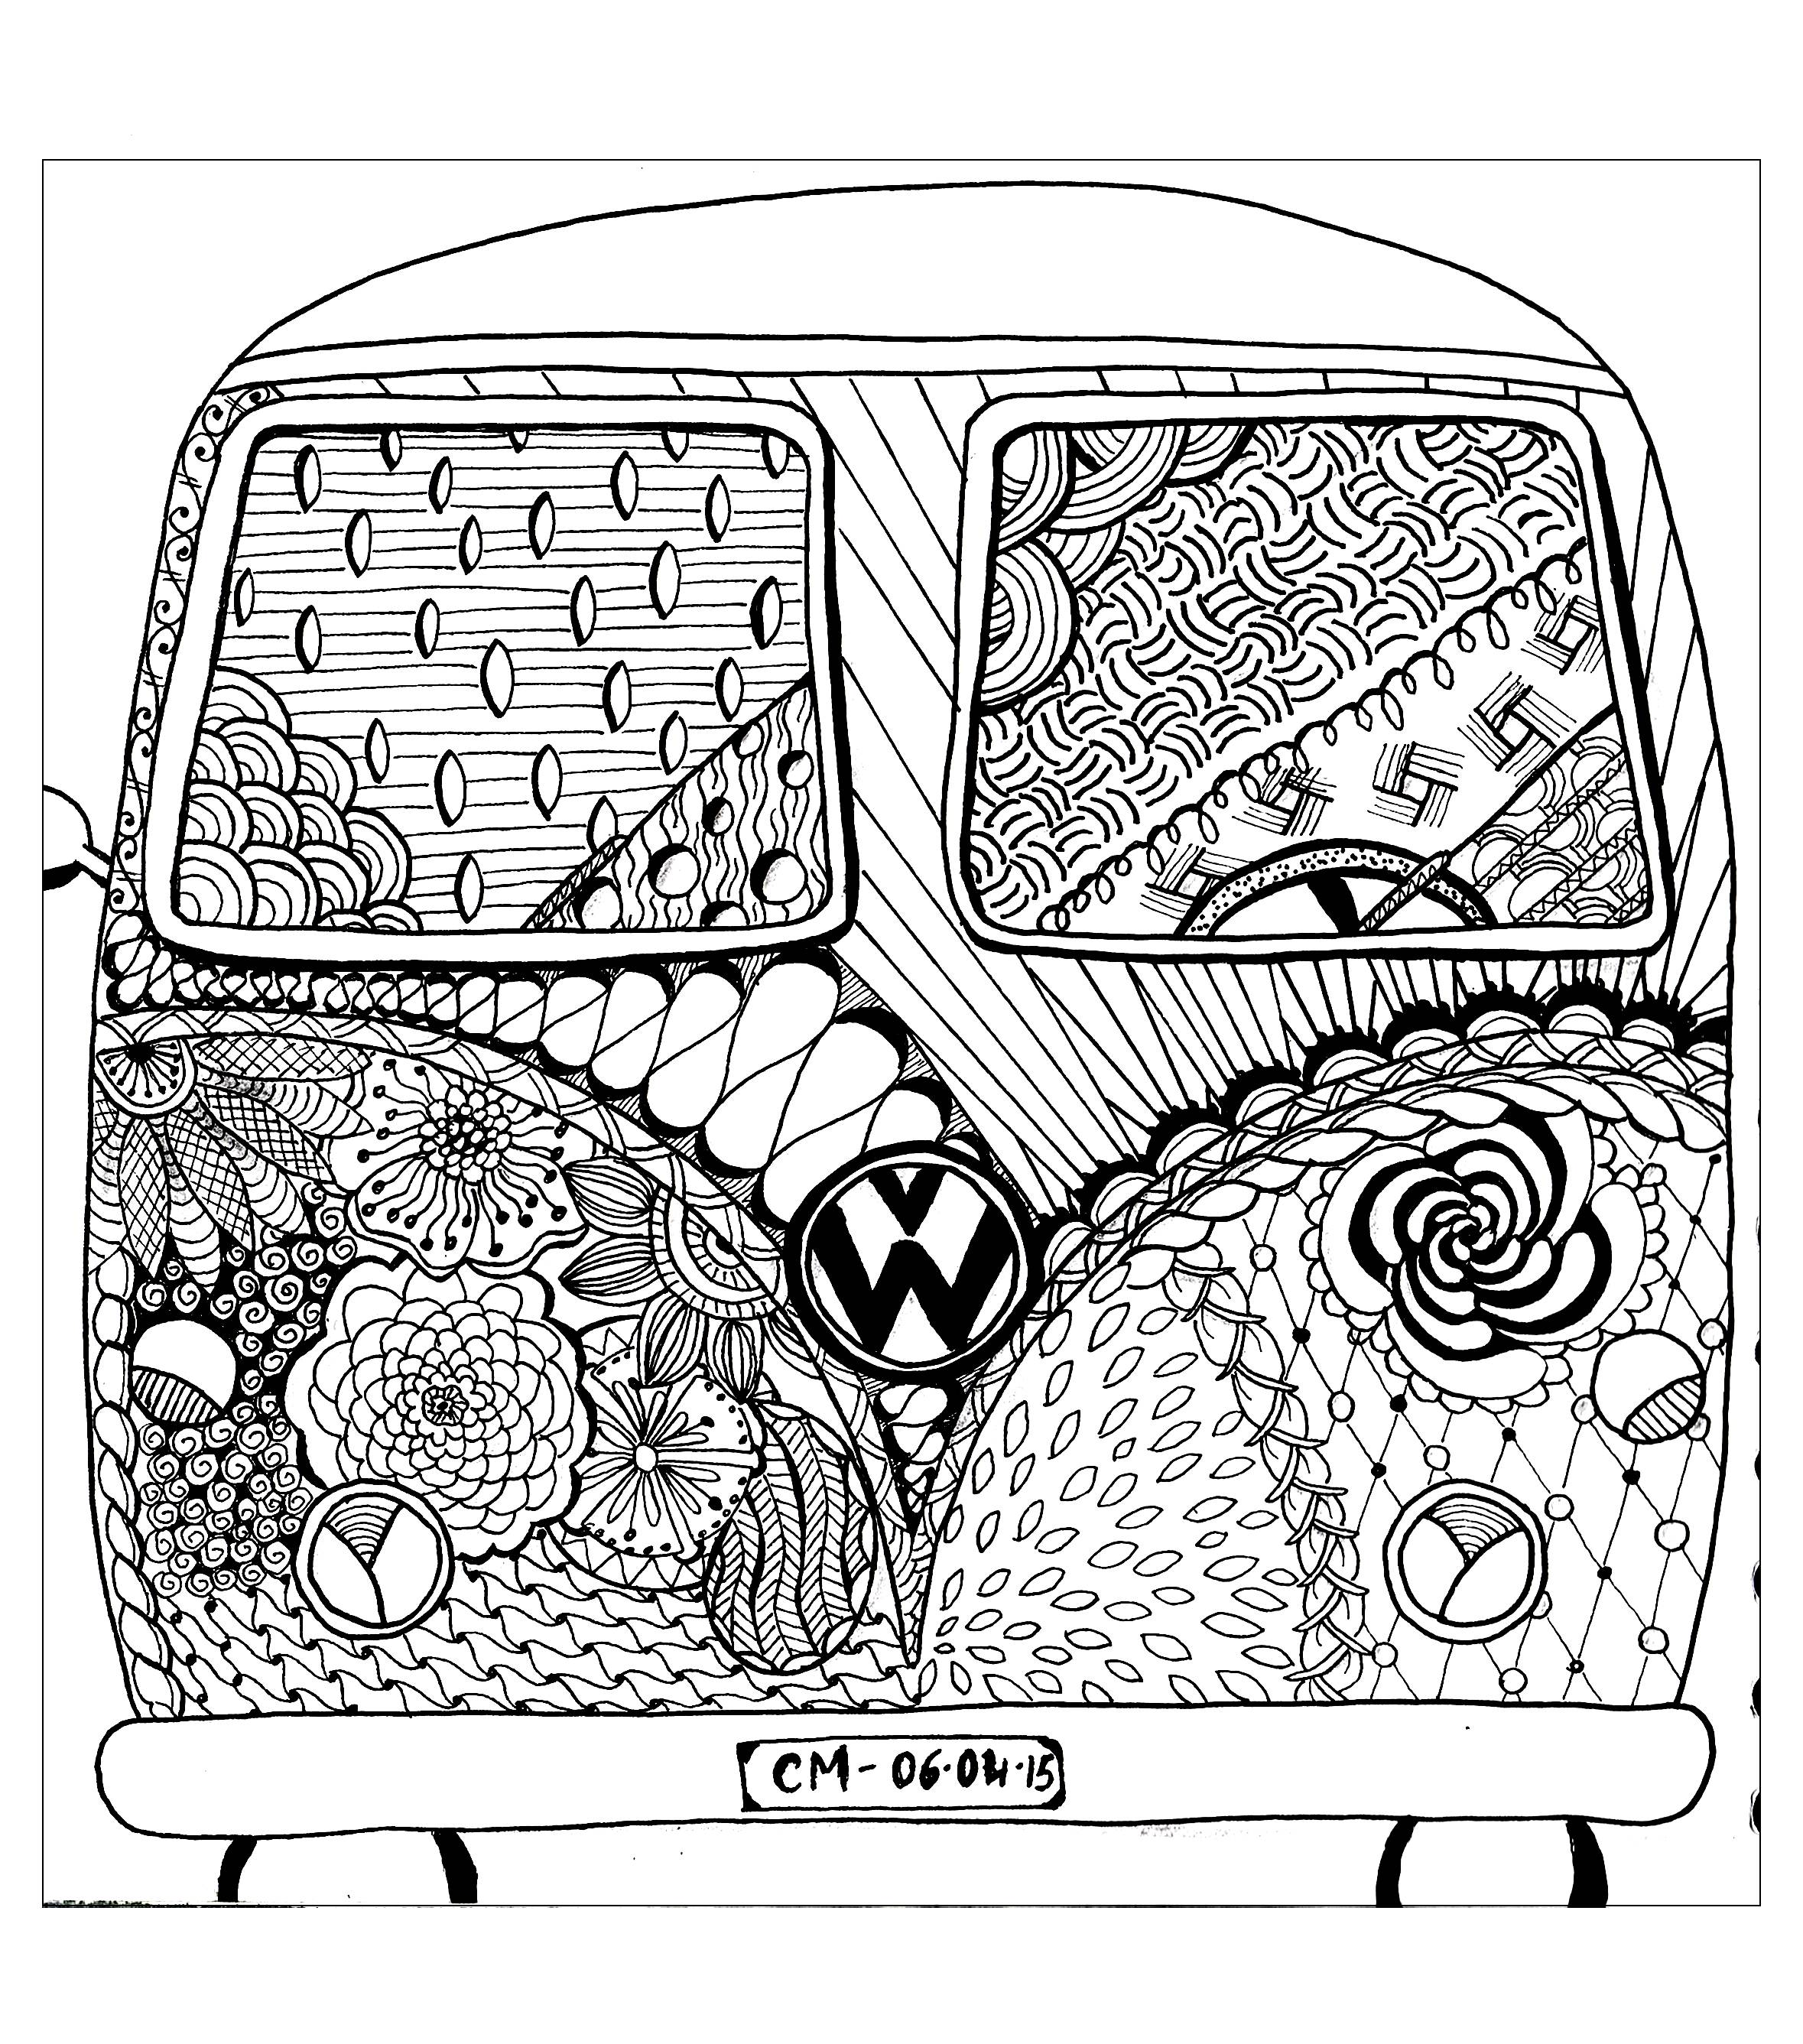 hippie camper exclusive zentangle coloring page see the original work from the - Zentangle Coloring Pages